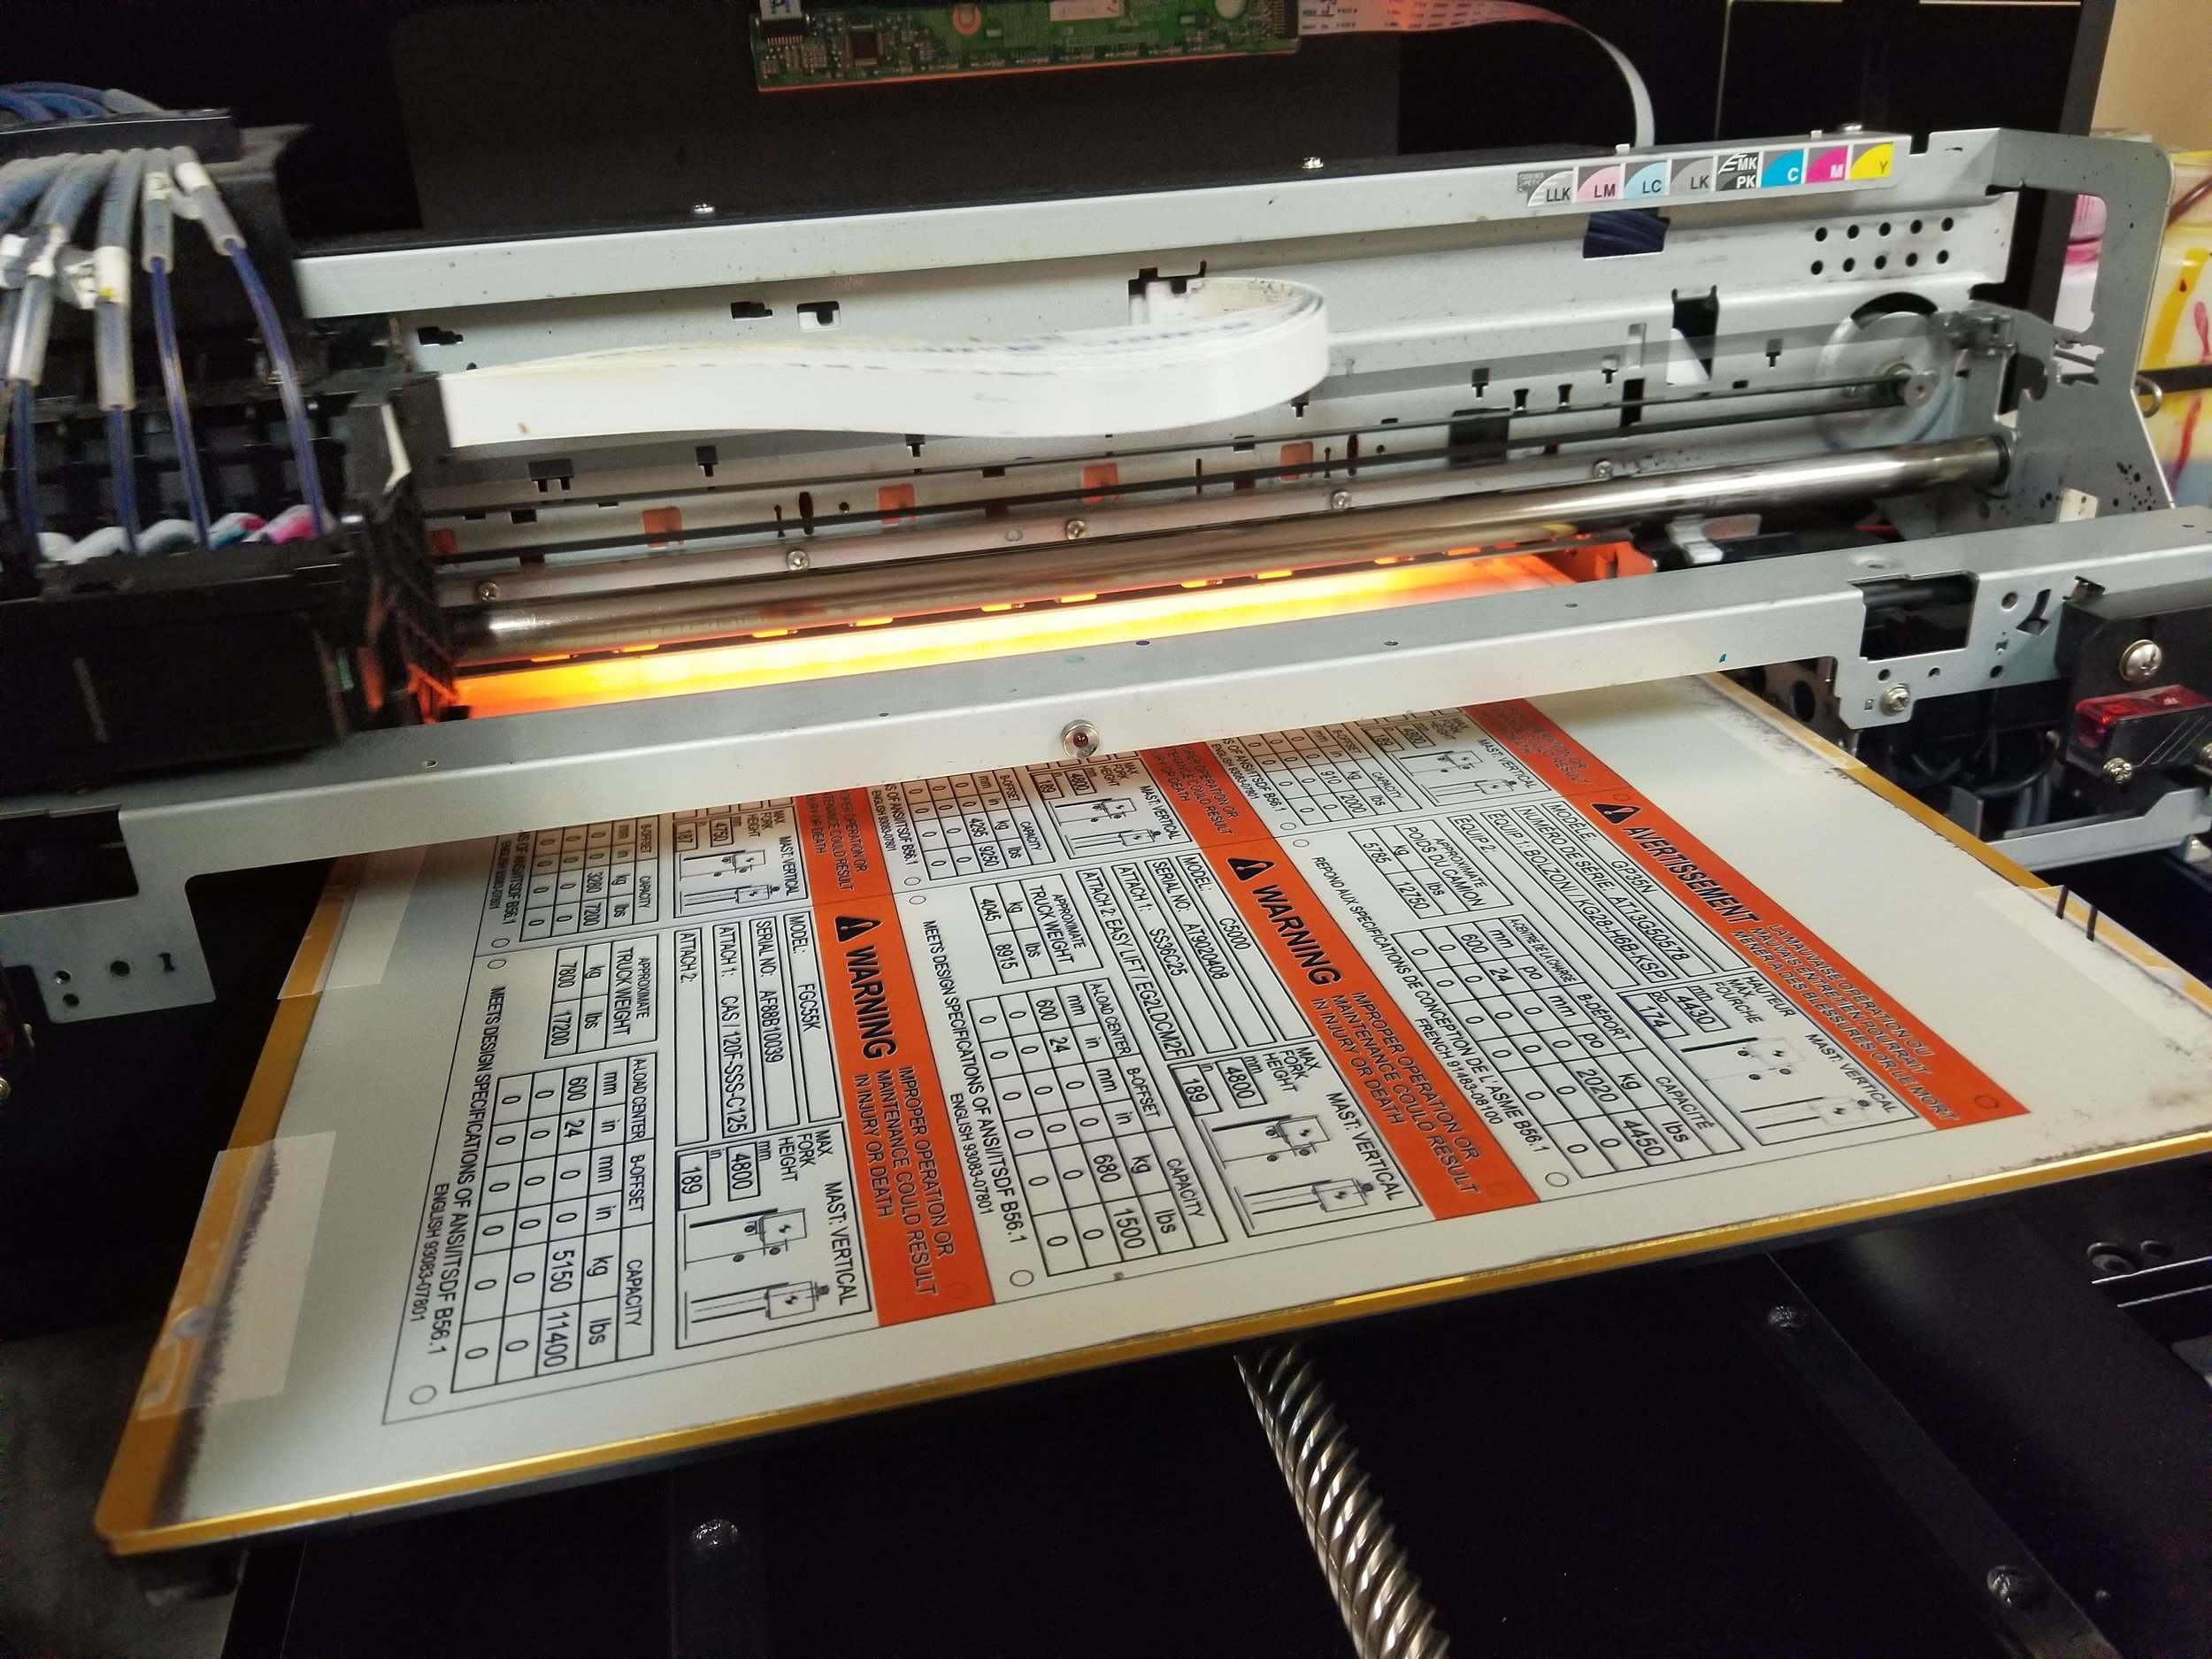 Custom Industrial Printing - Custom Industrial Plates - Industrial Tags - Stainless Steel Plates - Industrial Projects from Engrave It Houston